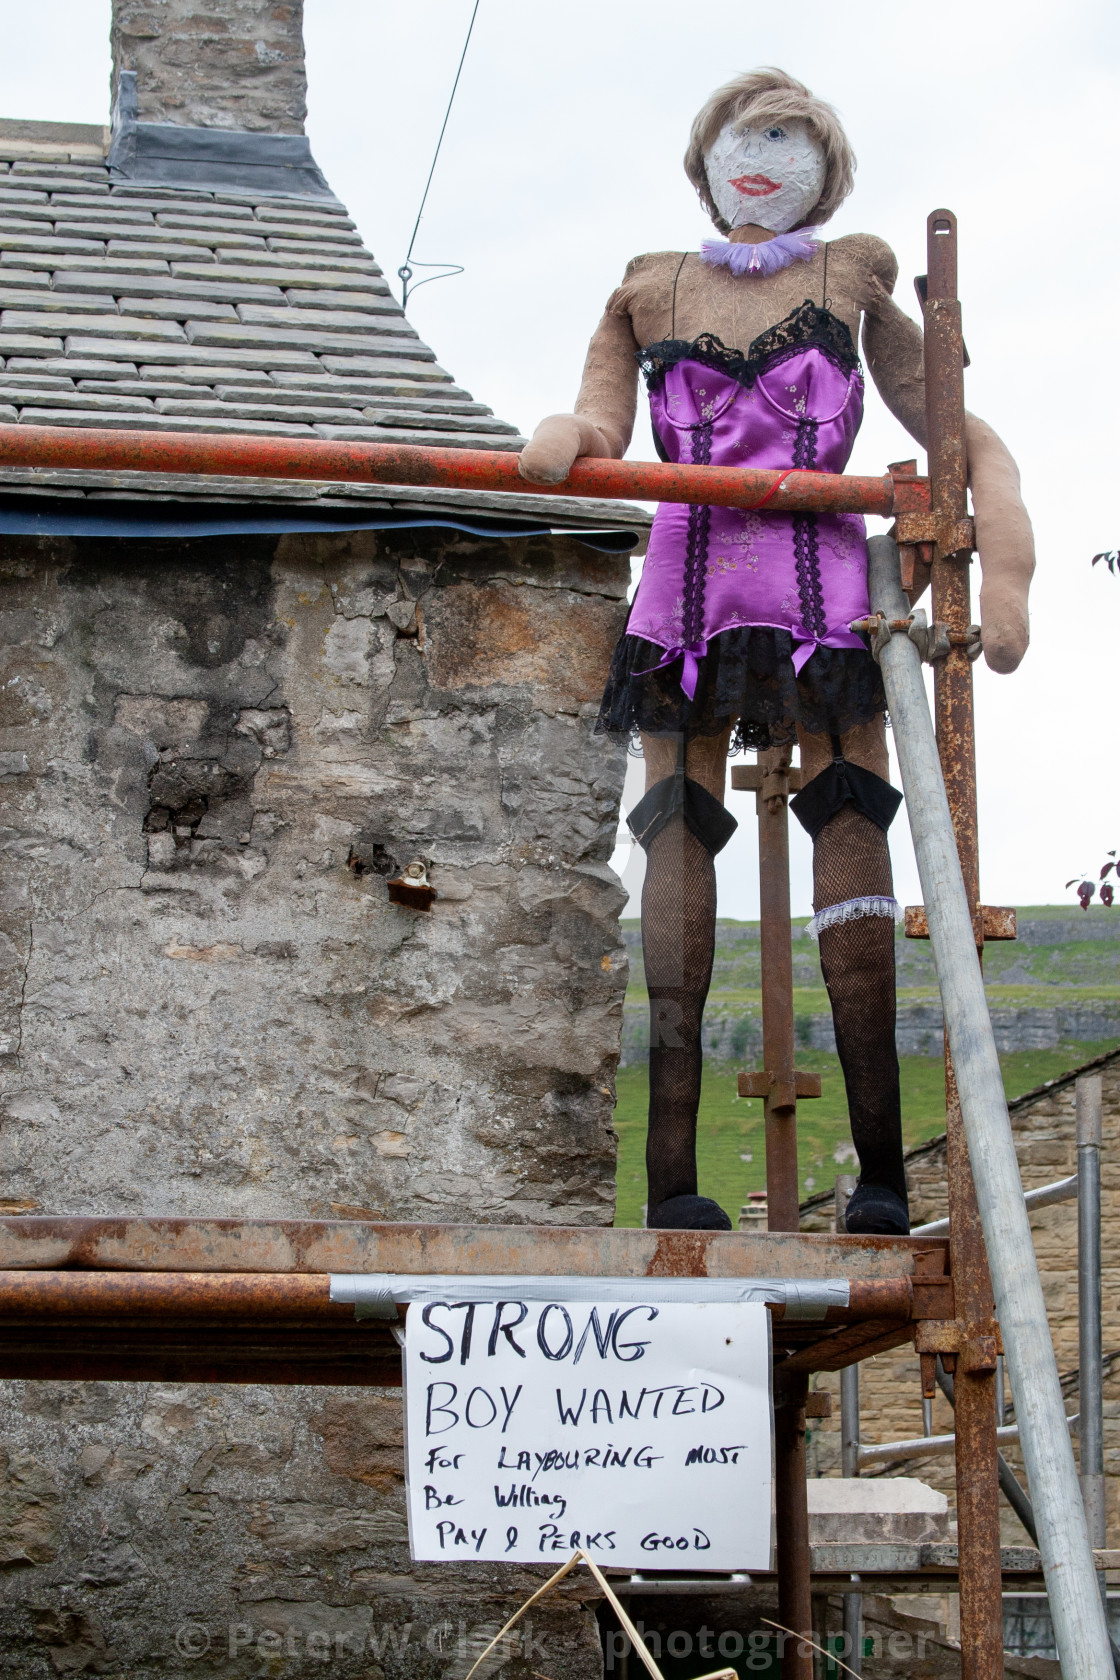 """Kettlewell Scarecrow Festival and Trail, Lady Builder on Scaffolding. Yorkshire Dales, England."" stock image"